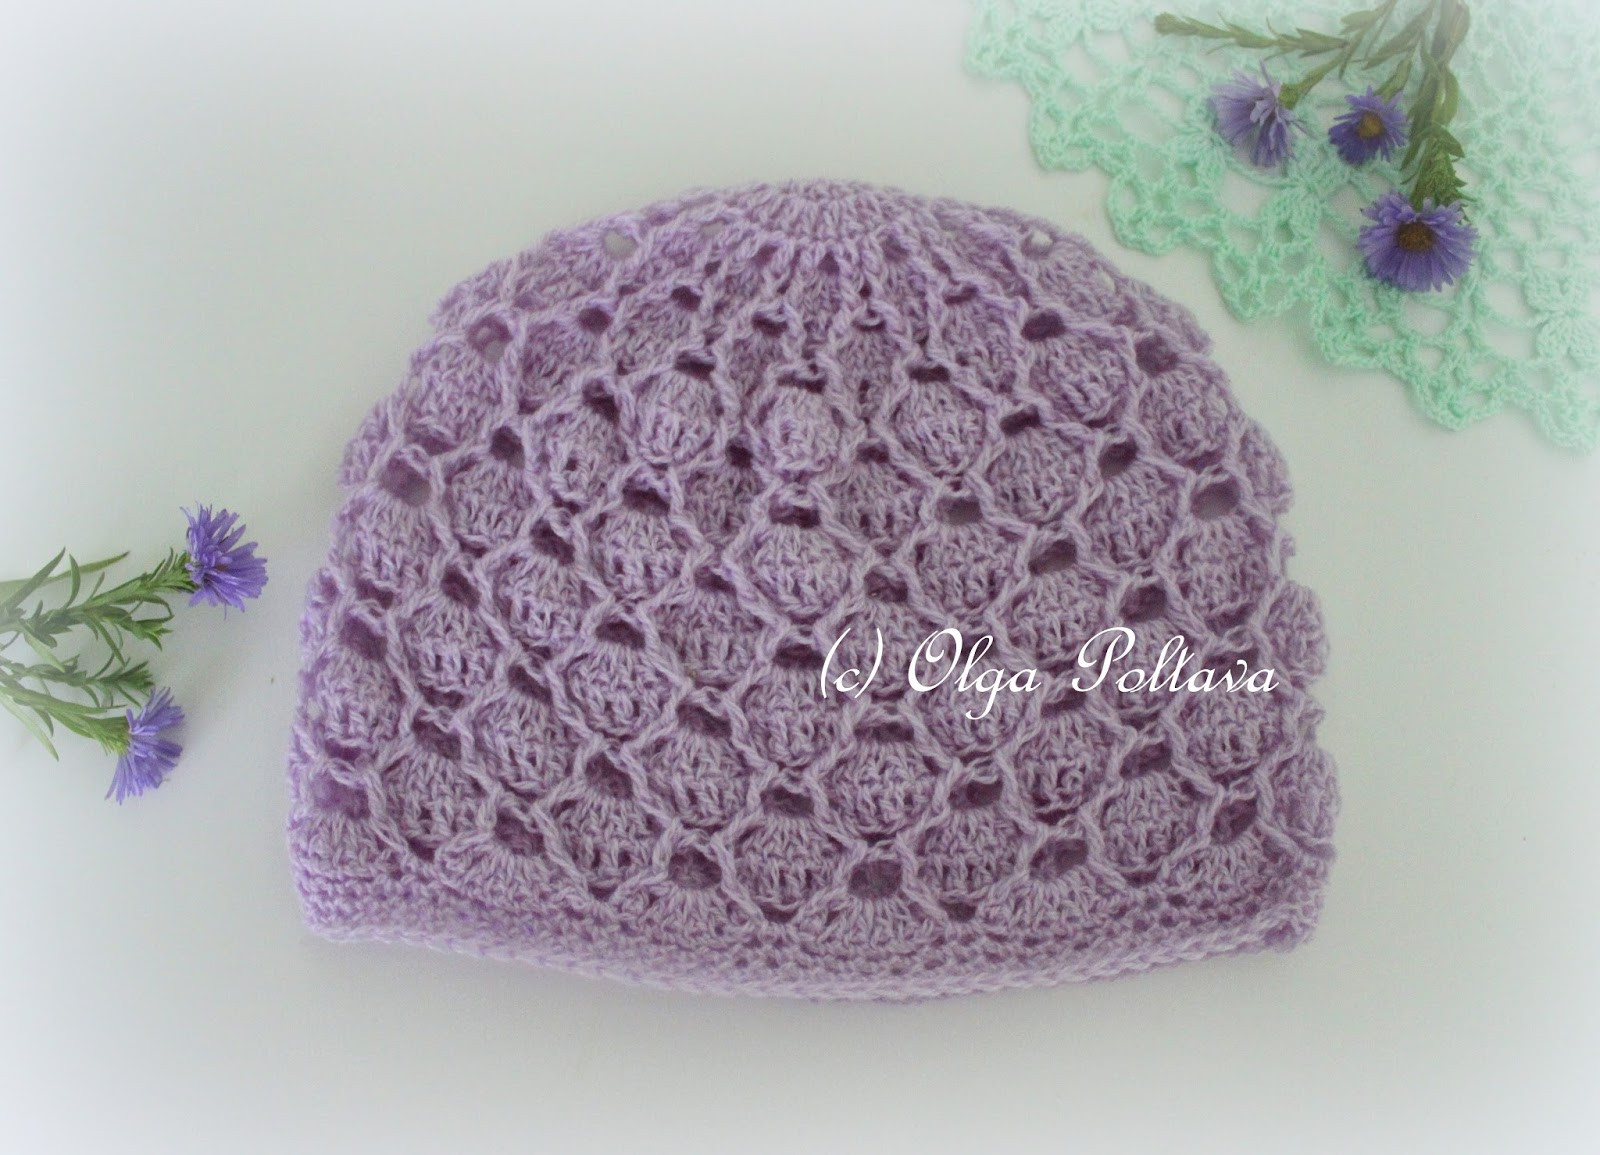 Free Crochet Baby Hats Awesome Lacy Crochet Delicate Lace Crochet Baby Hat Free Pattern Of Attractive 48 Photos Free Crochet Baby Hats